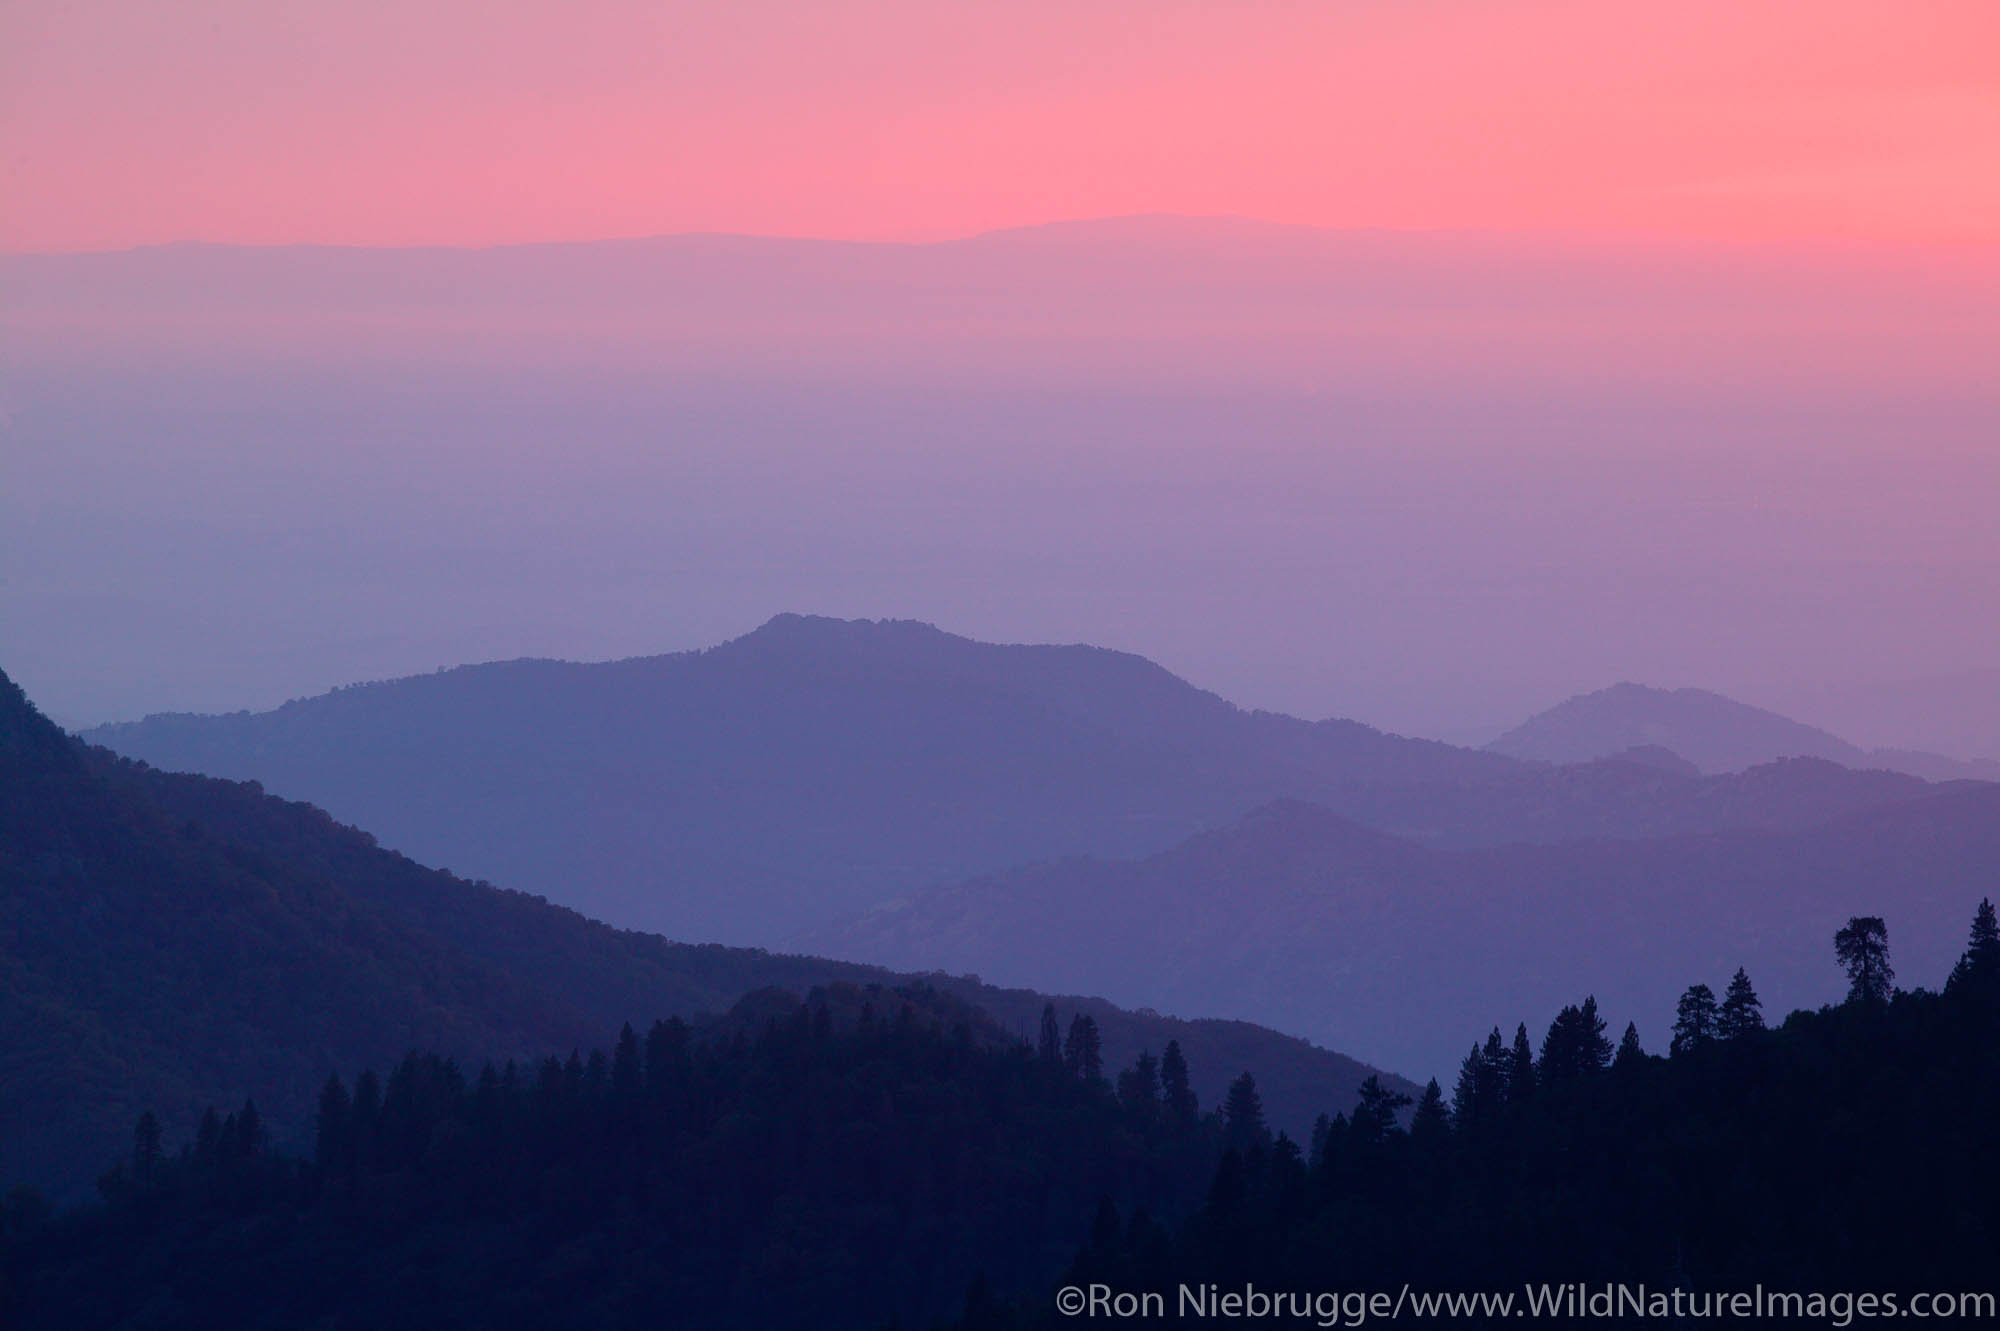 Looking out towards the California Central Valley from Sequoia National Park, California.